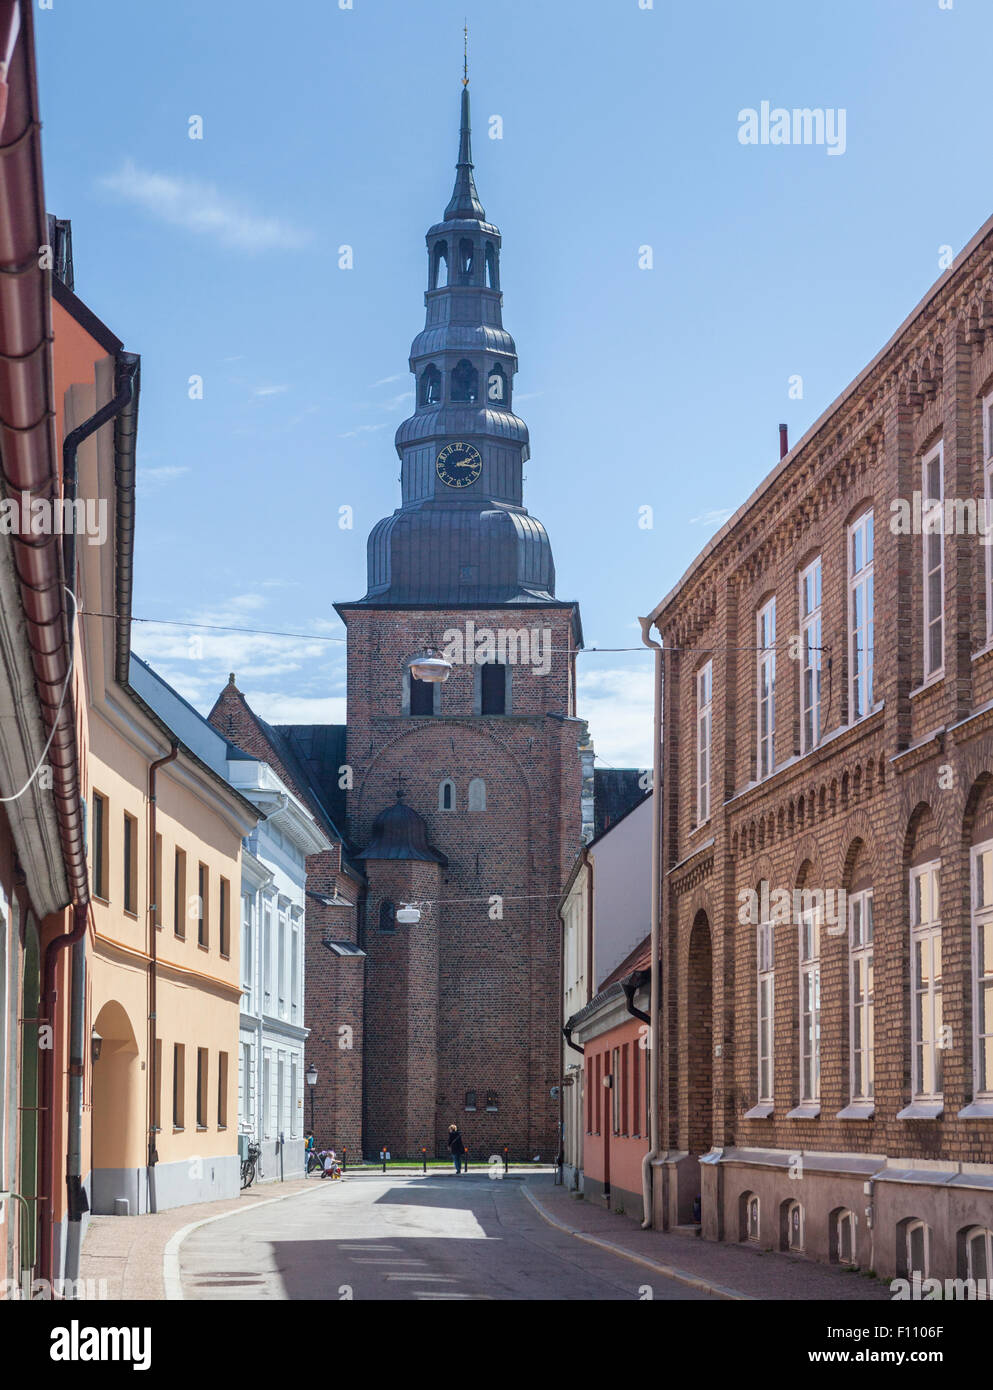 Sankta Maria Kyrka (St Maria's Church) and old buildings along Stora Norregatan in town of Ystadt in Skane, - Stock Image